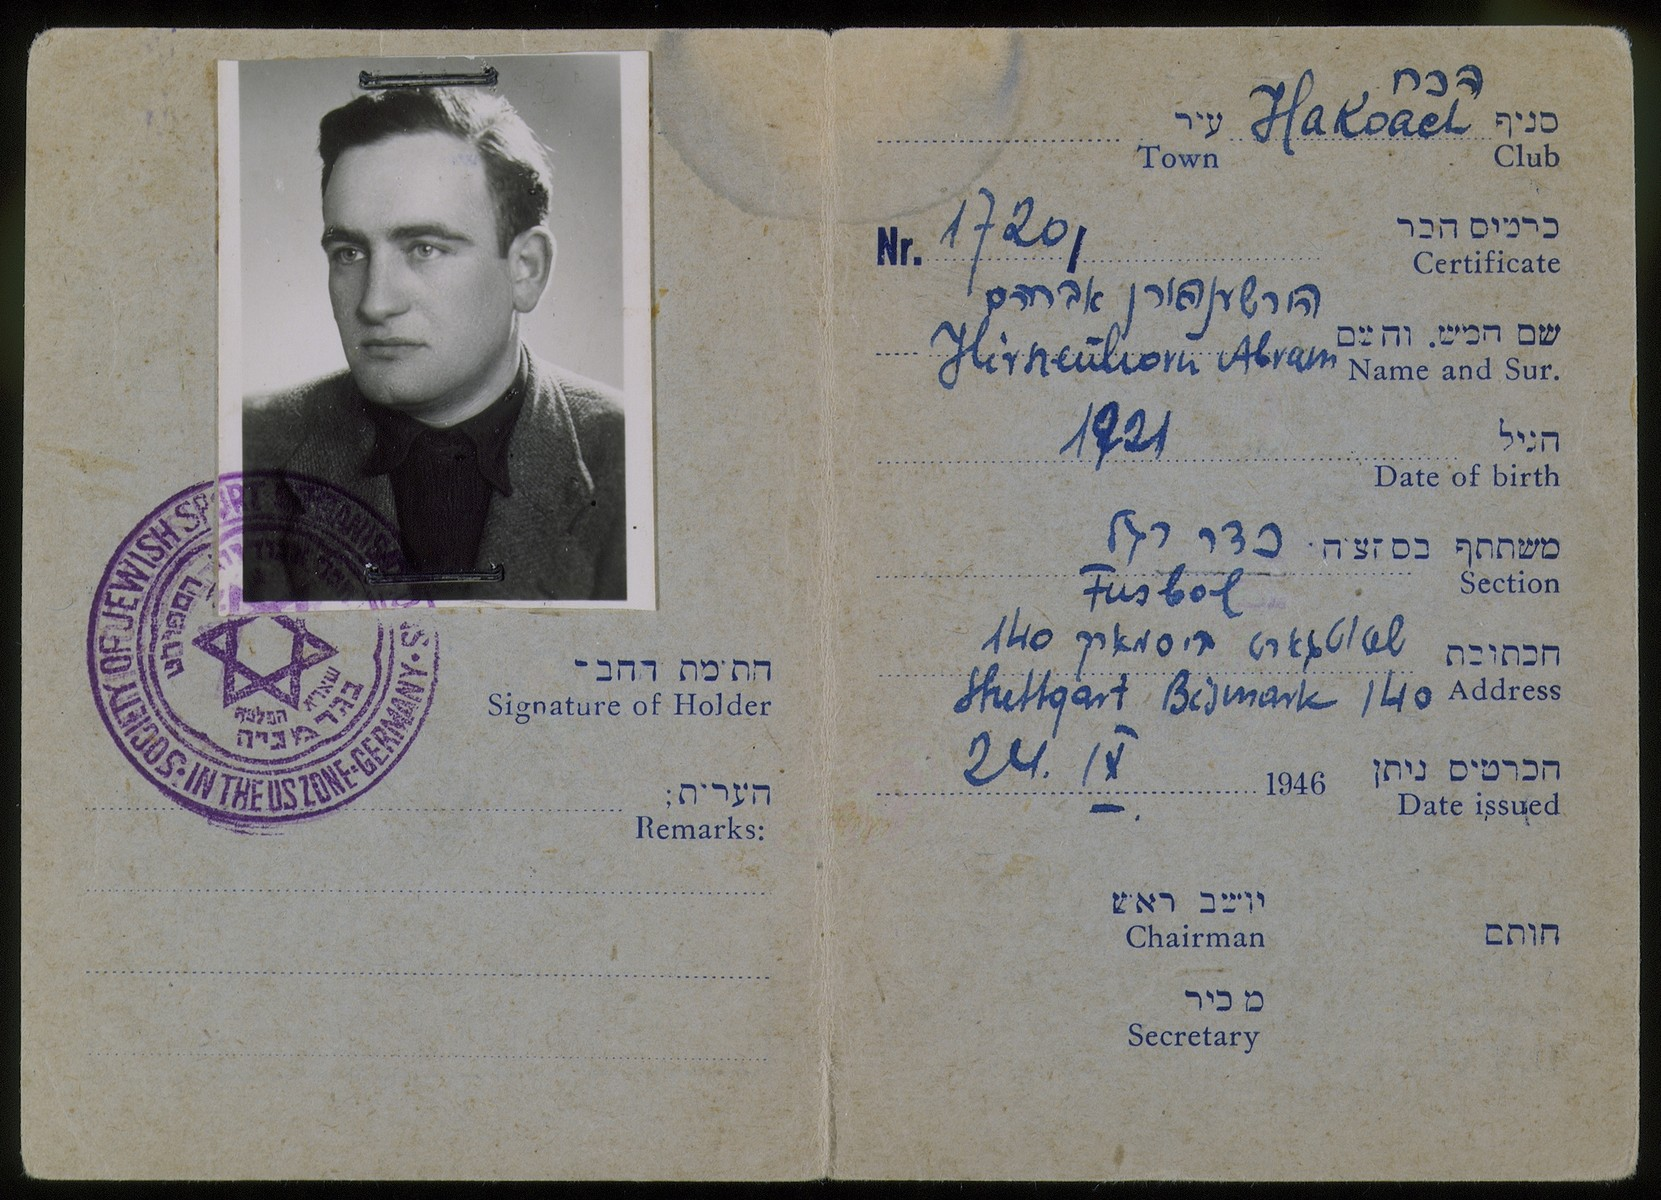 Membership card for the Society of Jewish Sport Organisations and Center for Physical Education issued to Jewish DP Abram Hirshenhorn  The society of Jewish Sport Organisations was sponsored by the Central Committee of Liberated Jews in the U.S. Zone of Germany.